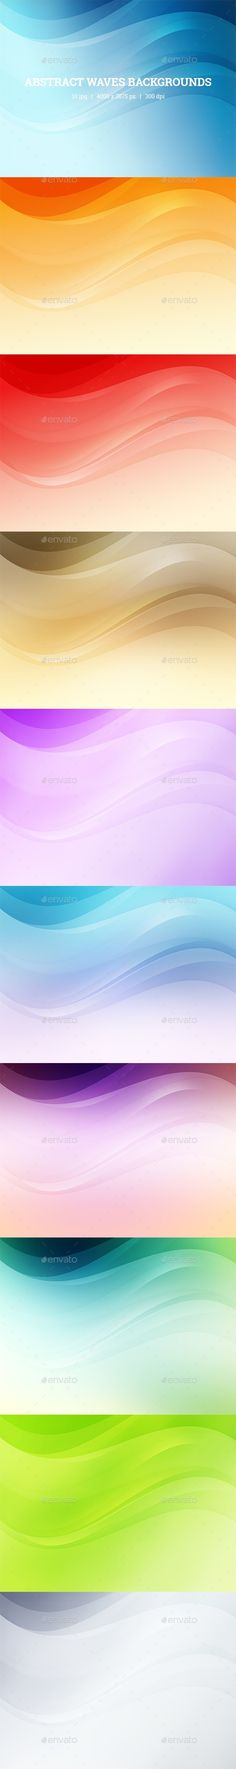 Buy Abstract Waves Backgrounds by ghssalem on GraphicRiver. This pack includes 10 Abstract Waves Backgrounds. Creative Typography Design, Waves Background, Abstract Waves, Background Images Wallpapers, Soft Waves, Abstract Backgrounds, Diy Fashion, Graphic Design, Flow